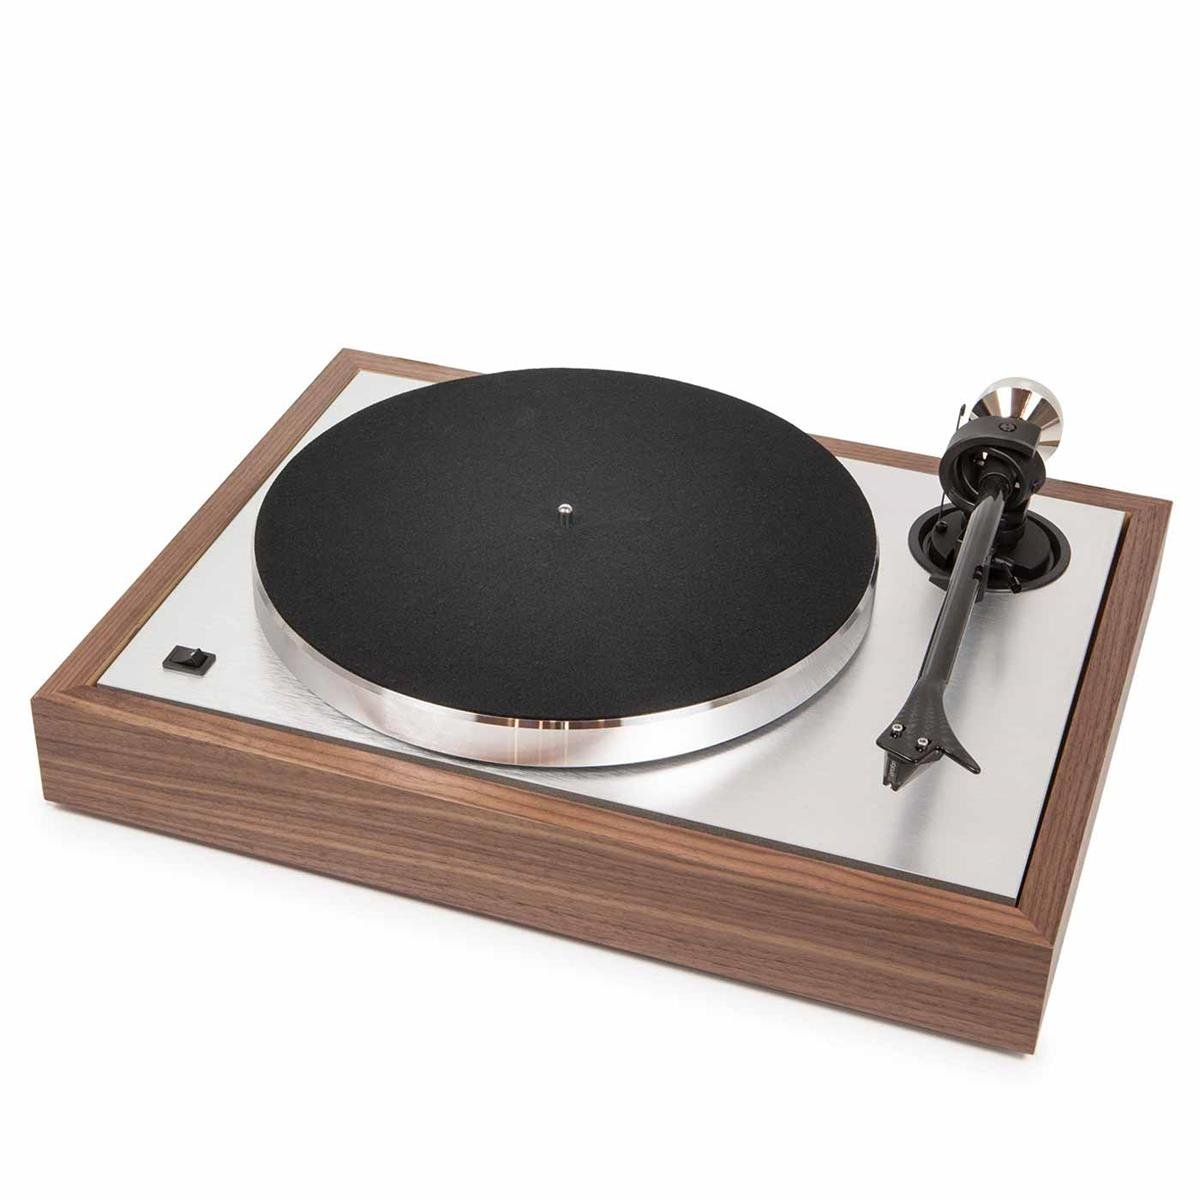 Pro-Ject The Classic Sub-Chassis Turntable with 9'' Carbon/Aluminum Sandwich Tonearm, Walnut by Pro-Ject